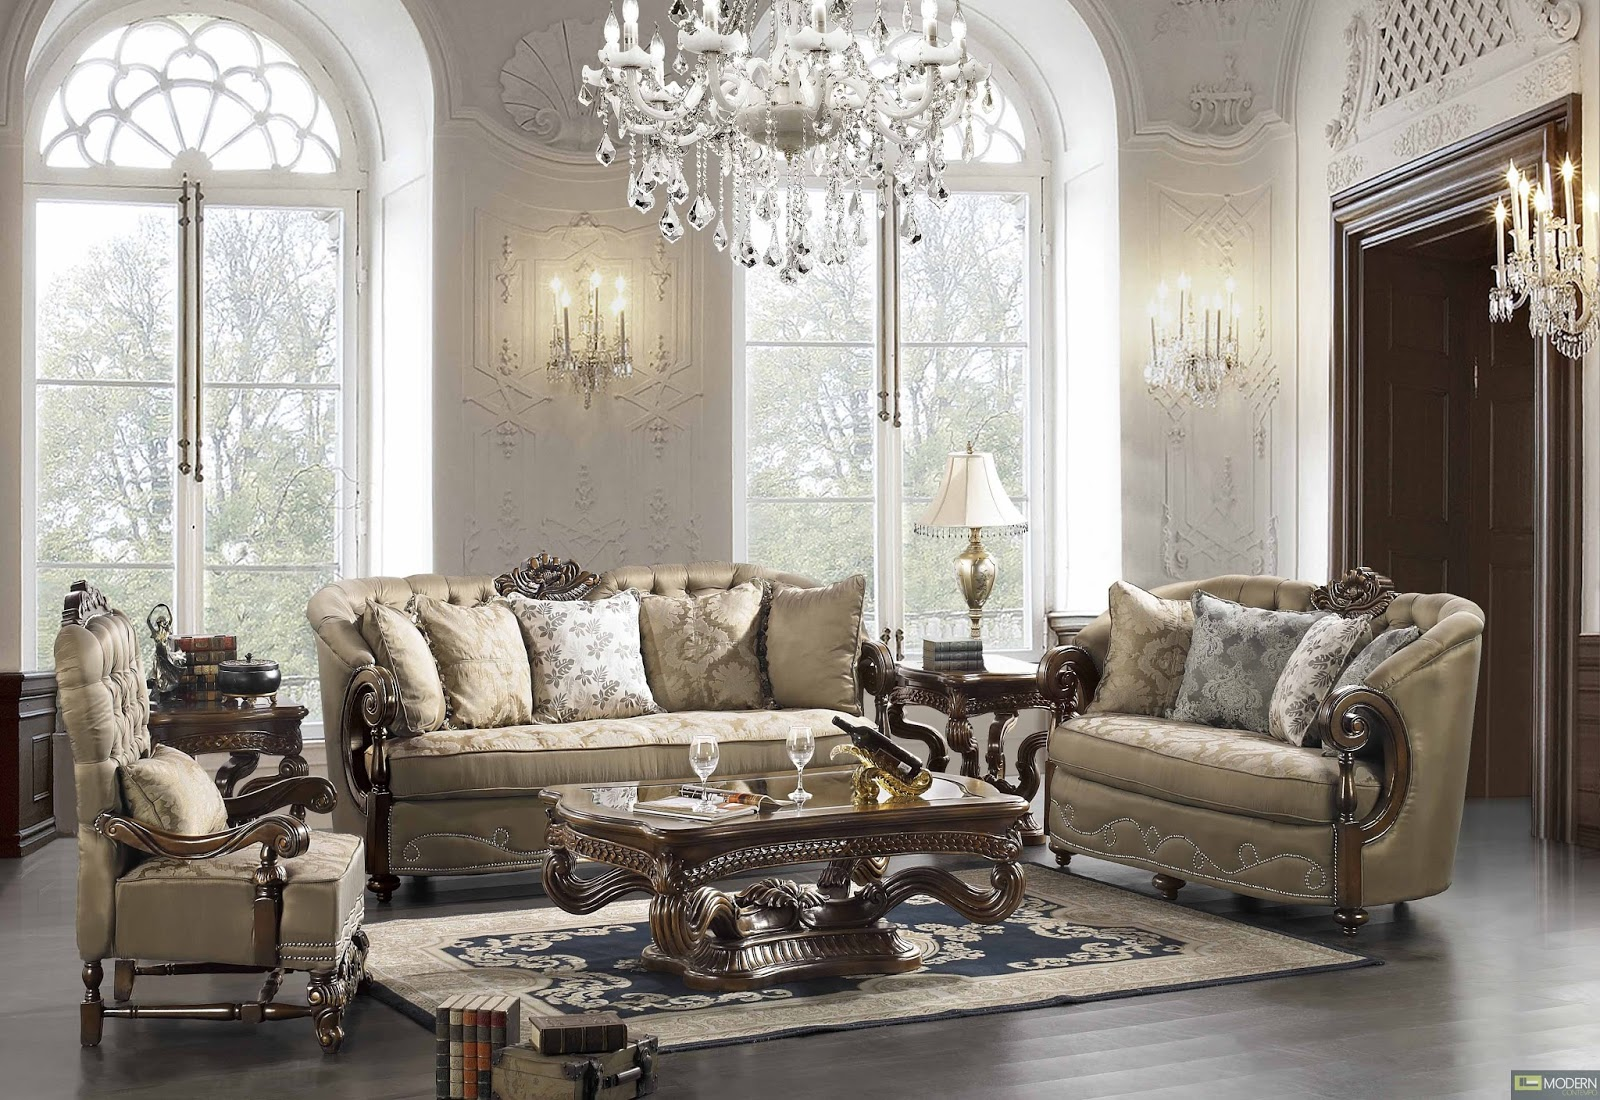 Best furniture ideas for home traditional classic Living room furniture styles and colors